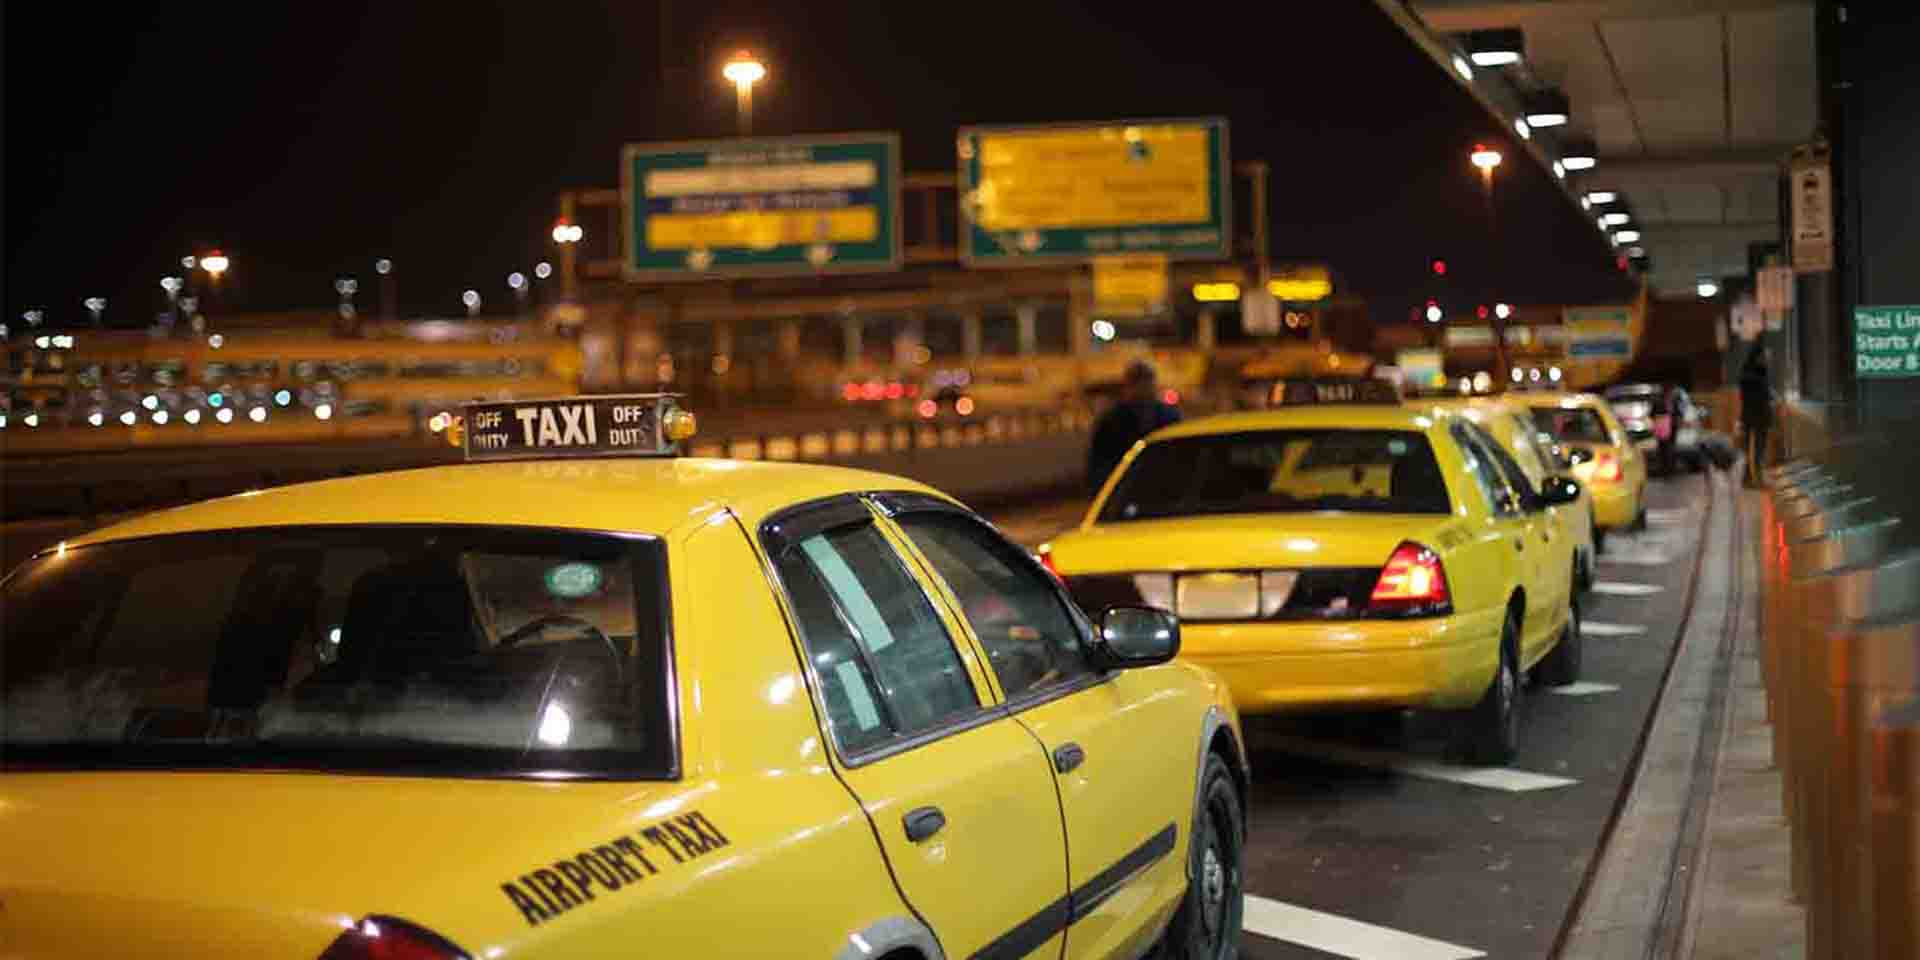 Newark Airport has taxi stands in every Terminal, just follow the taxi signs.